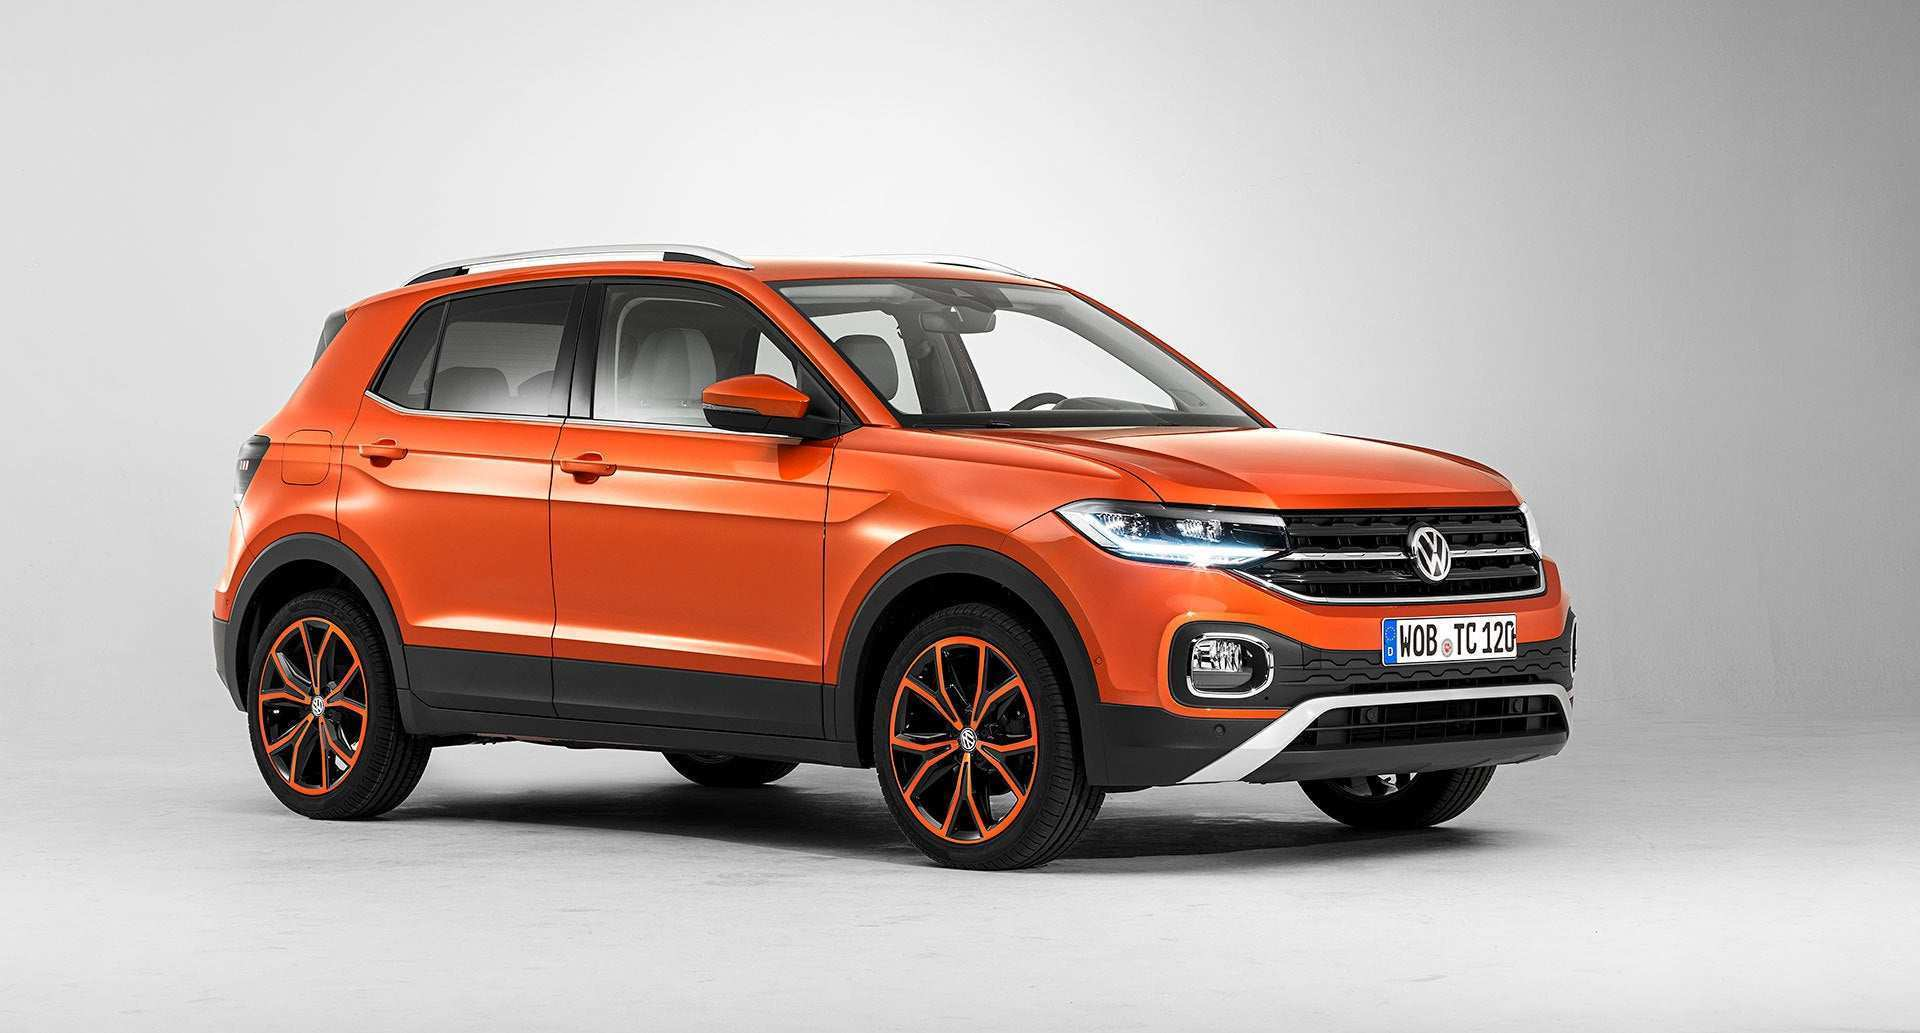 66 All New Nuevos Modelos Volkswagen 2019 Price And Release Date